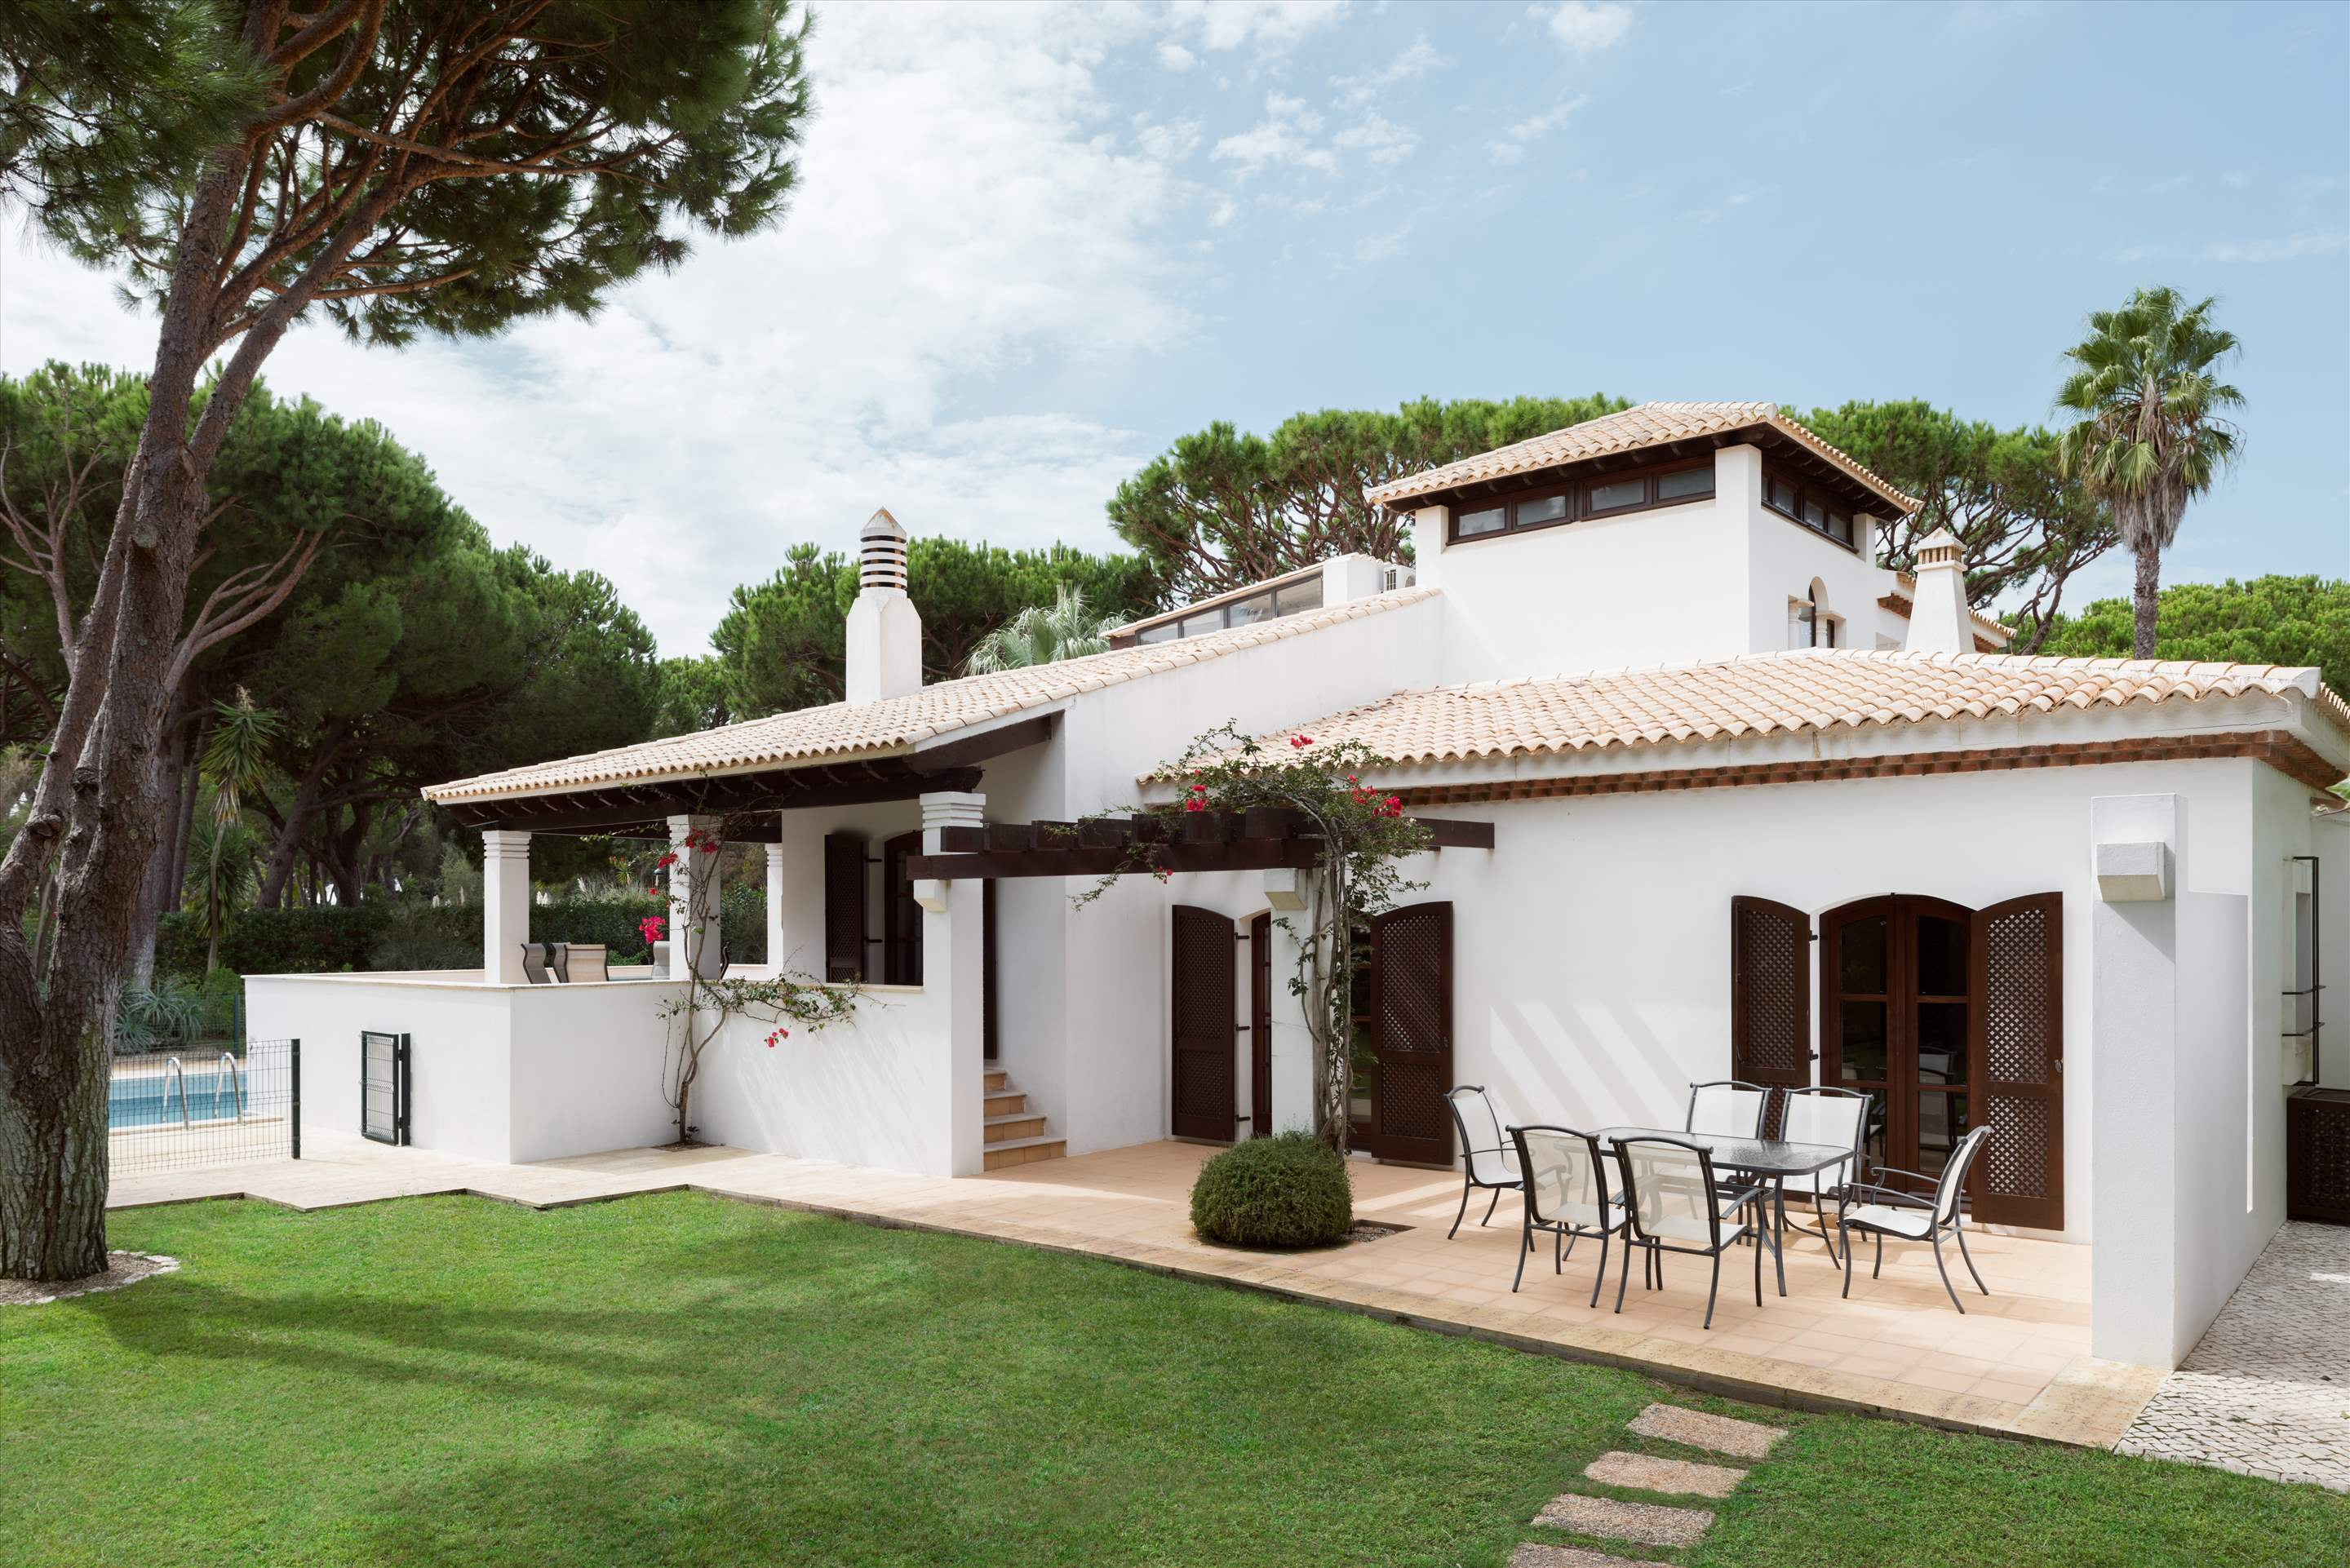 Pine Cliffs Villa Aurora, 4 bedroom villa in Pine Cliffs Resort, Algarve Photo #1